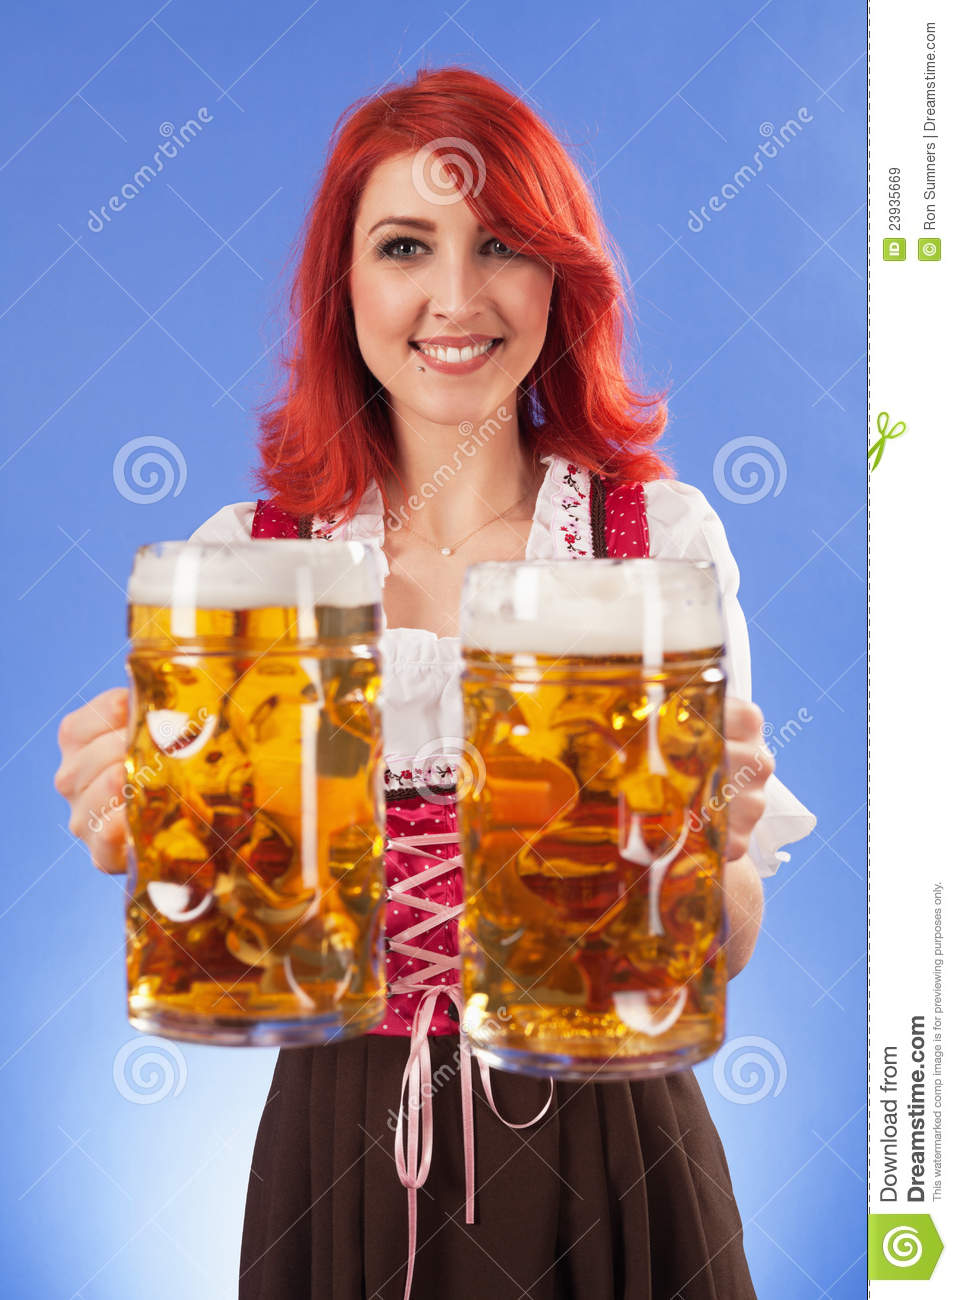 oktoberfest girl serving beer royalty free stock images free apple clipart free apple clipart border